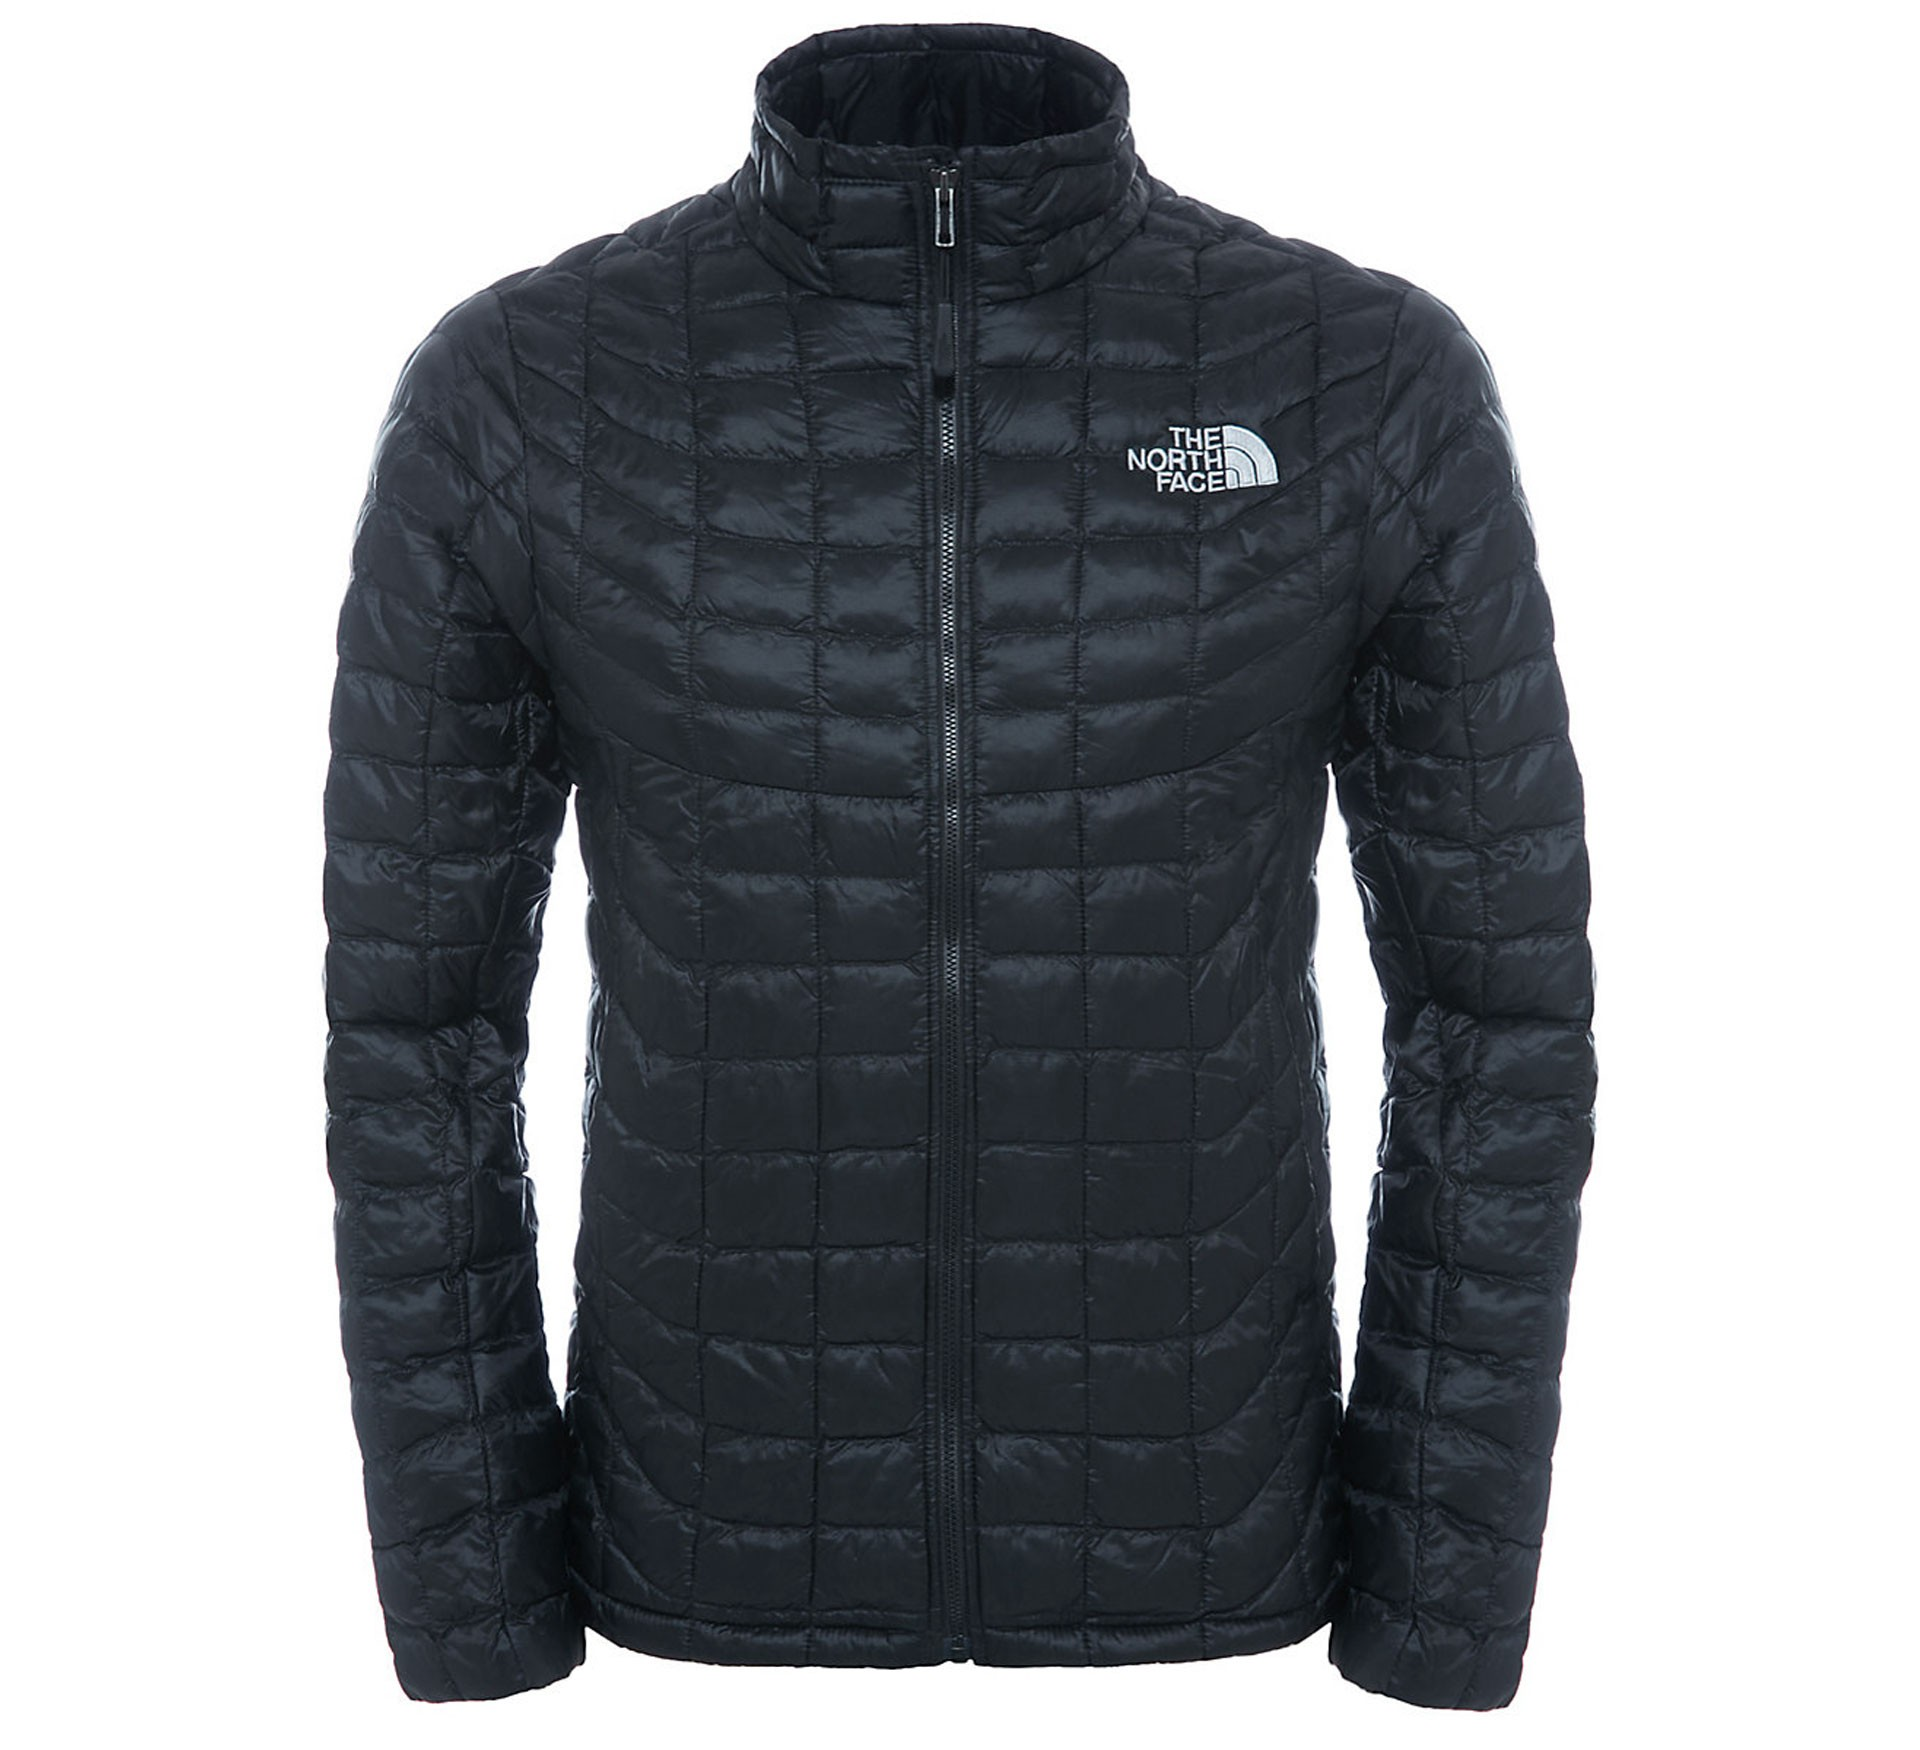 Plutosport - The North Face Thermoball FZ Jacket